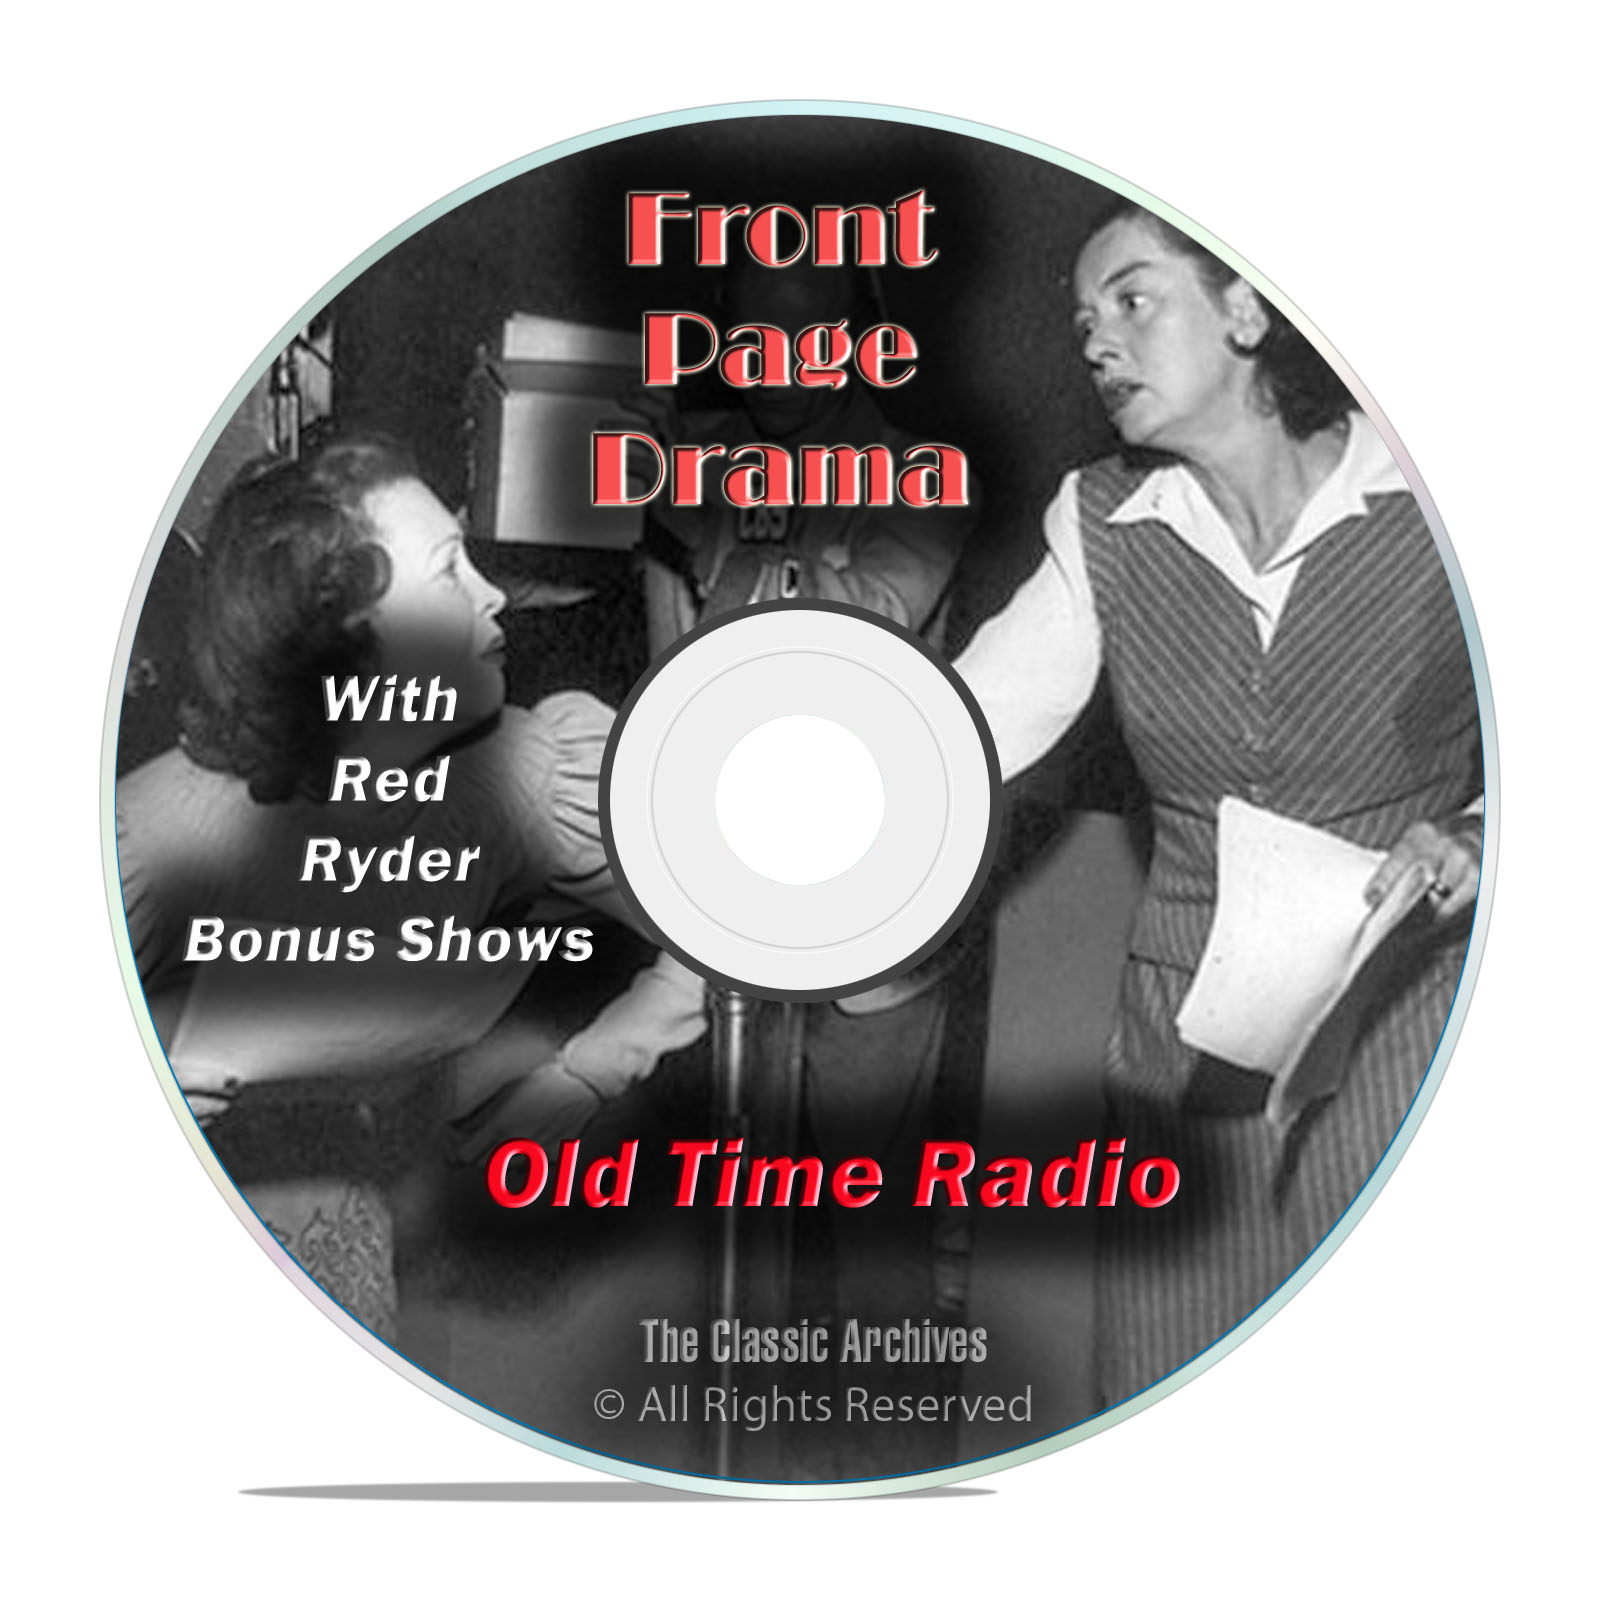 Front Page Drama, 867 Classic Old Time Radio Drama Shows, OTR mp3 DVD